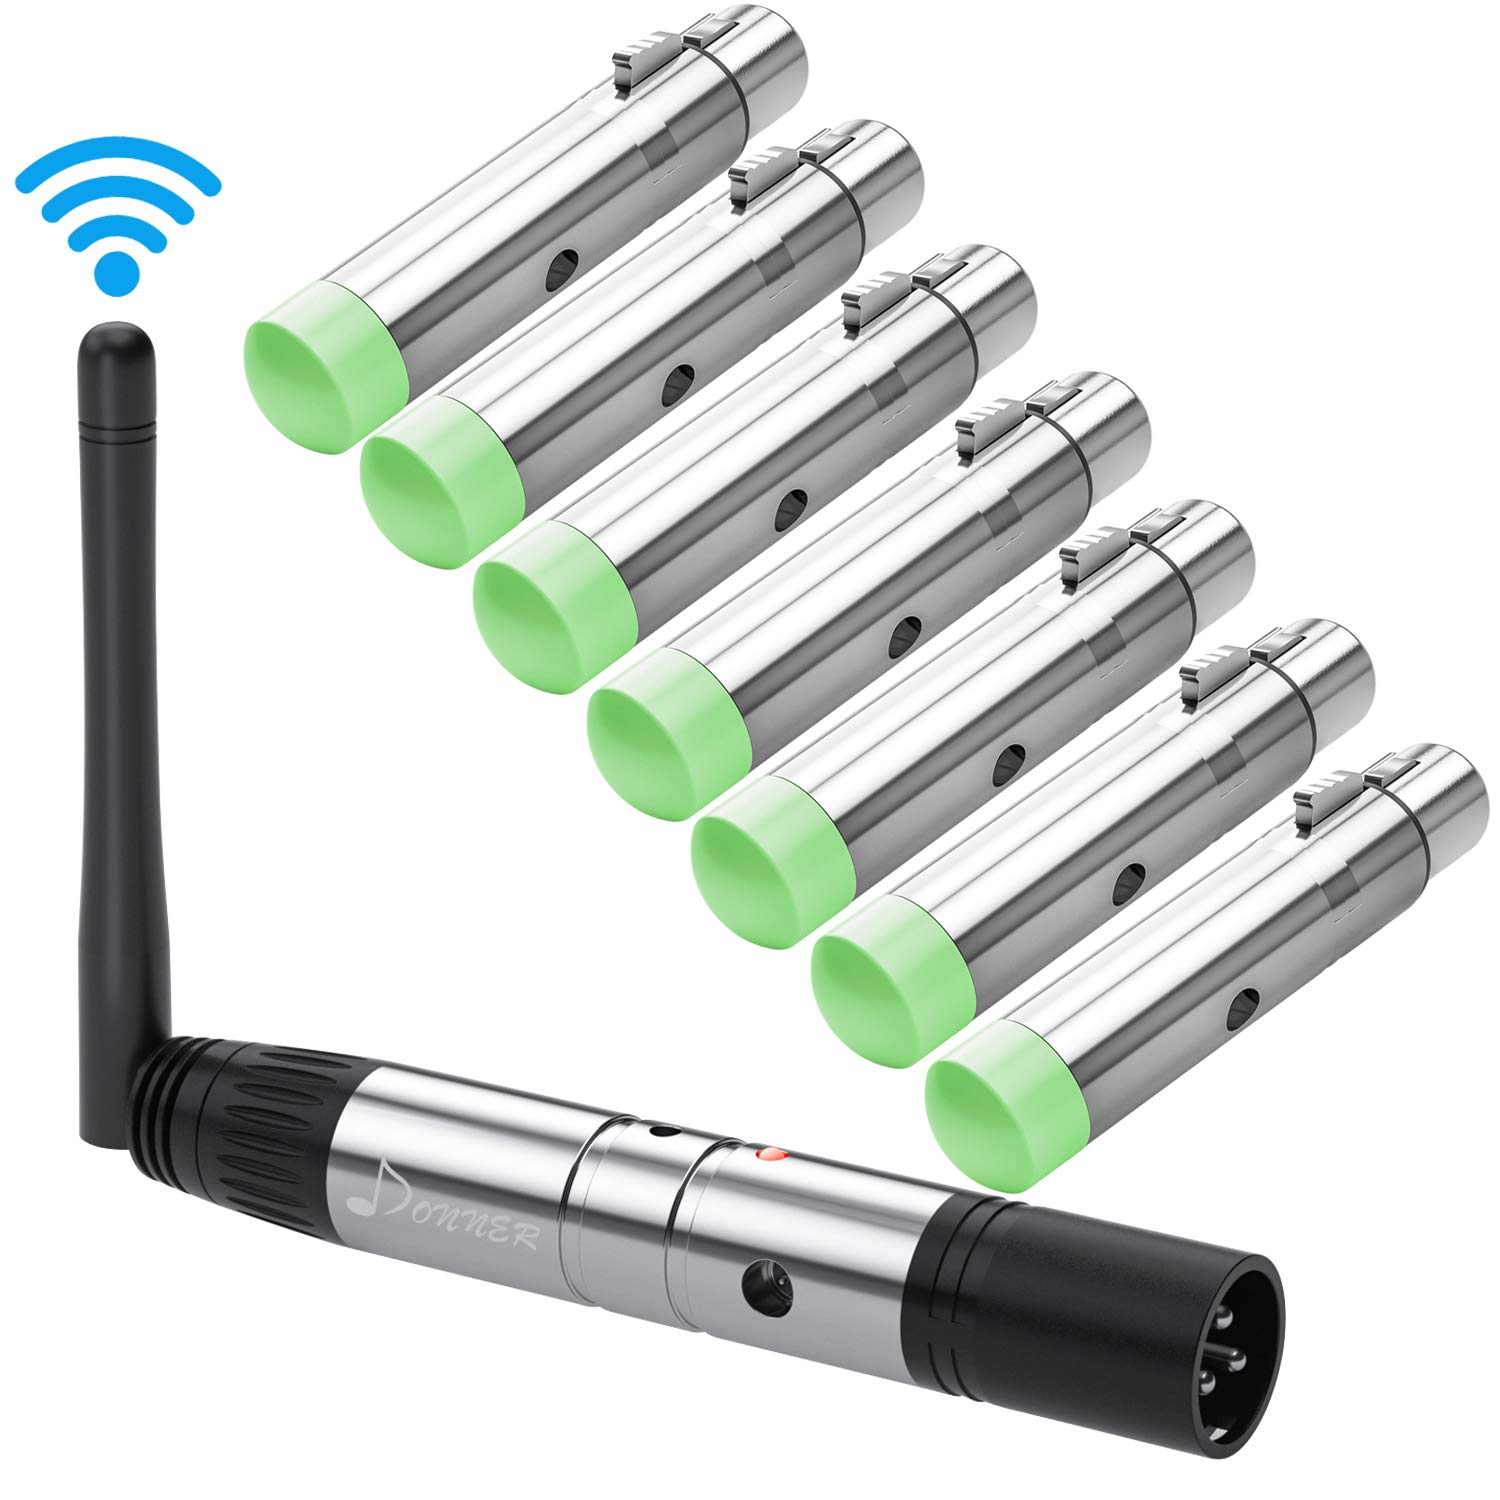 Donner 8pcs DMX512 DMX Dfi DJ 2.4G Wireless 7 Receiver with Tricolor LED Indicators & 1 Transmitter LED Lighting Control